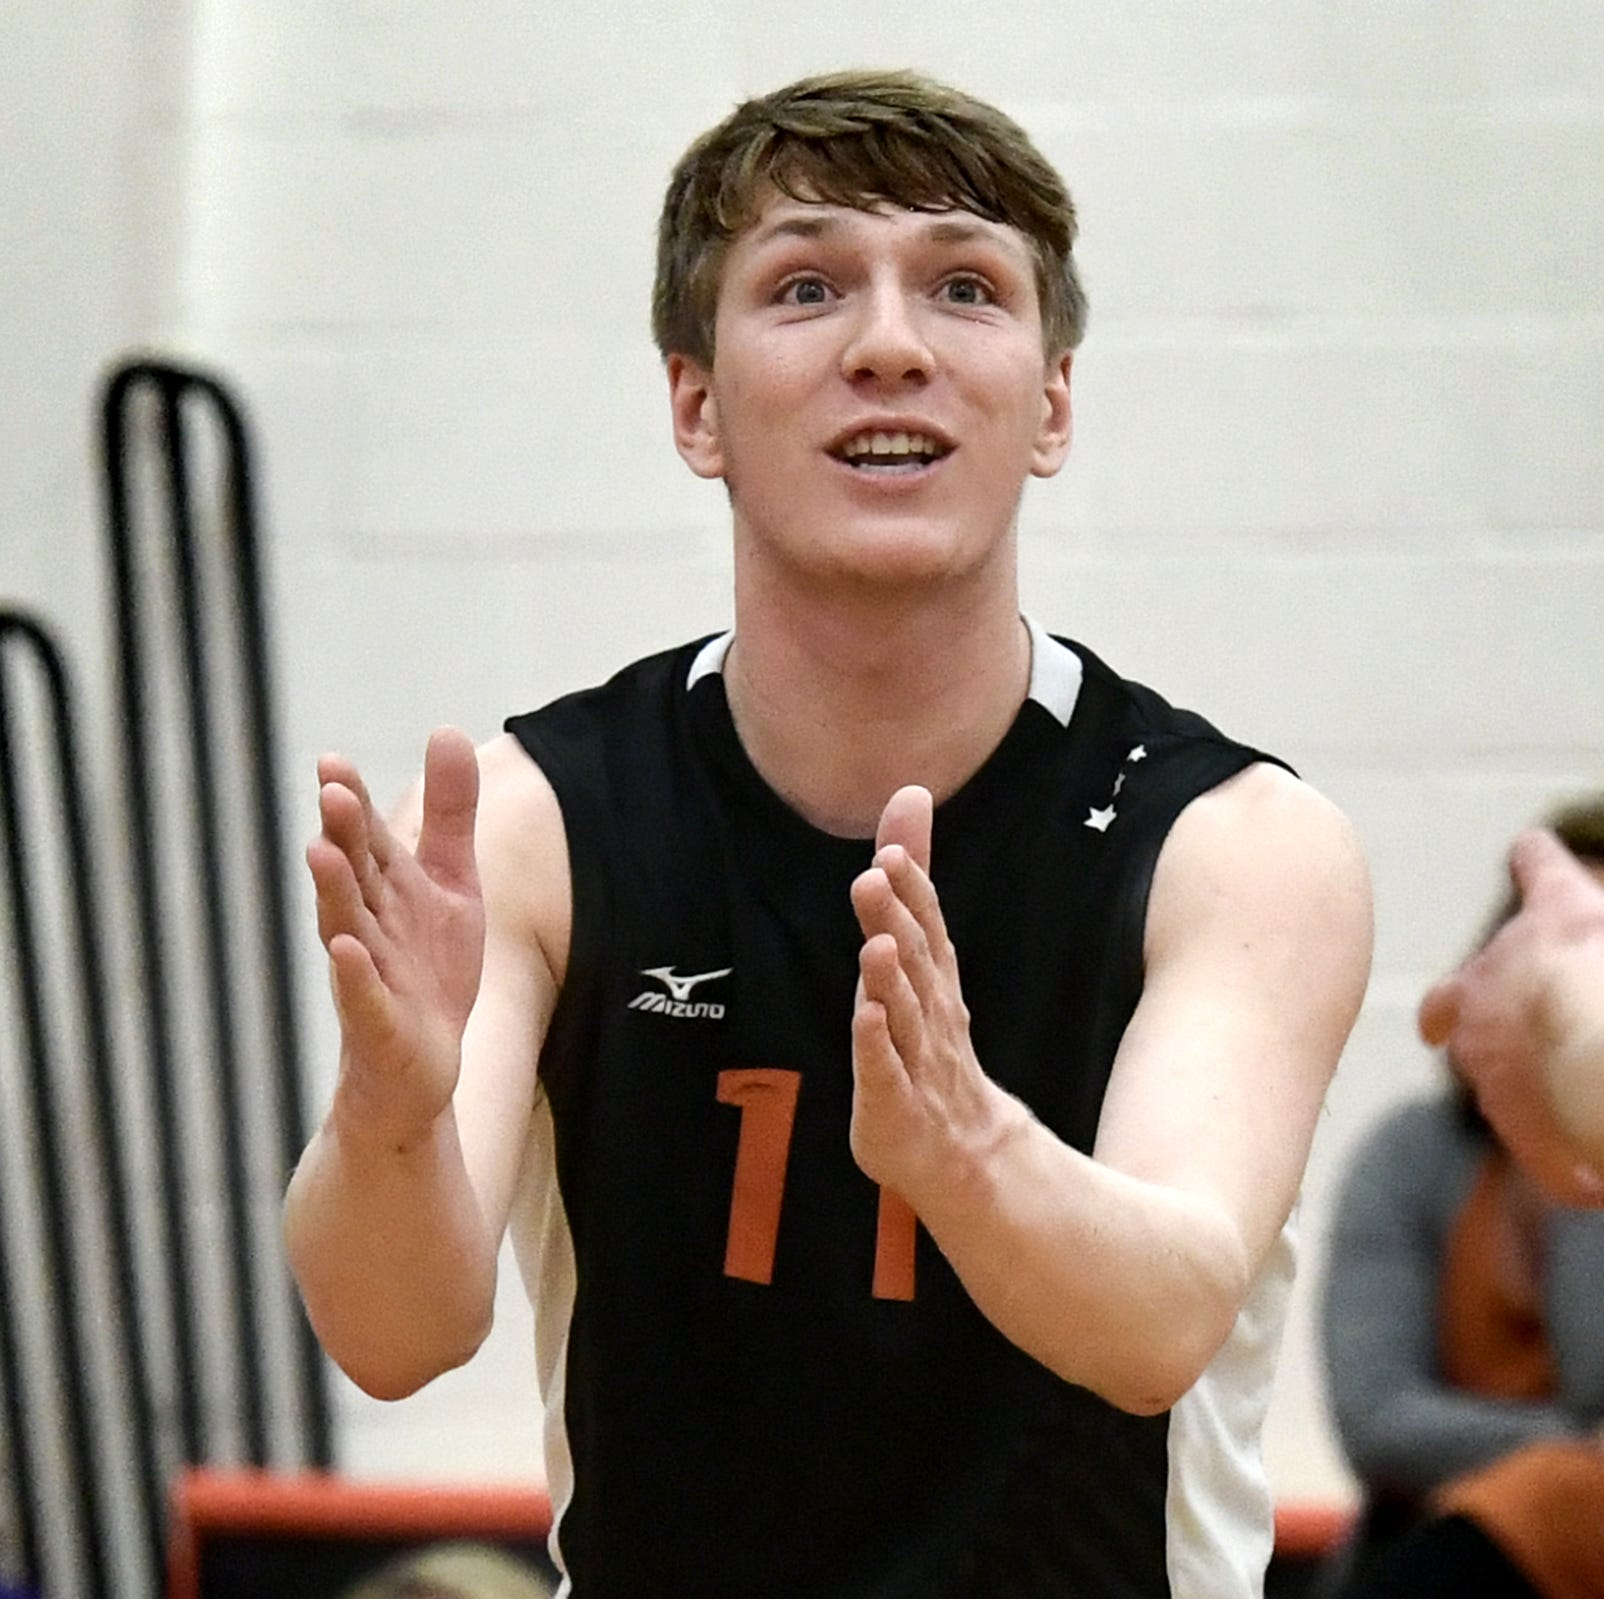 PREP NOTES: Central York boys earn epic volleyball win vs. Northeastern in Koller final